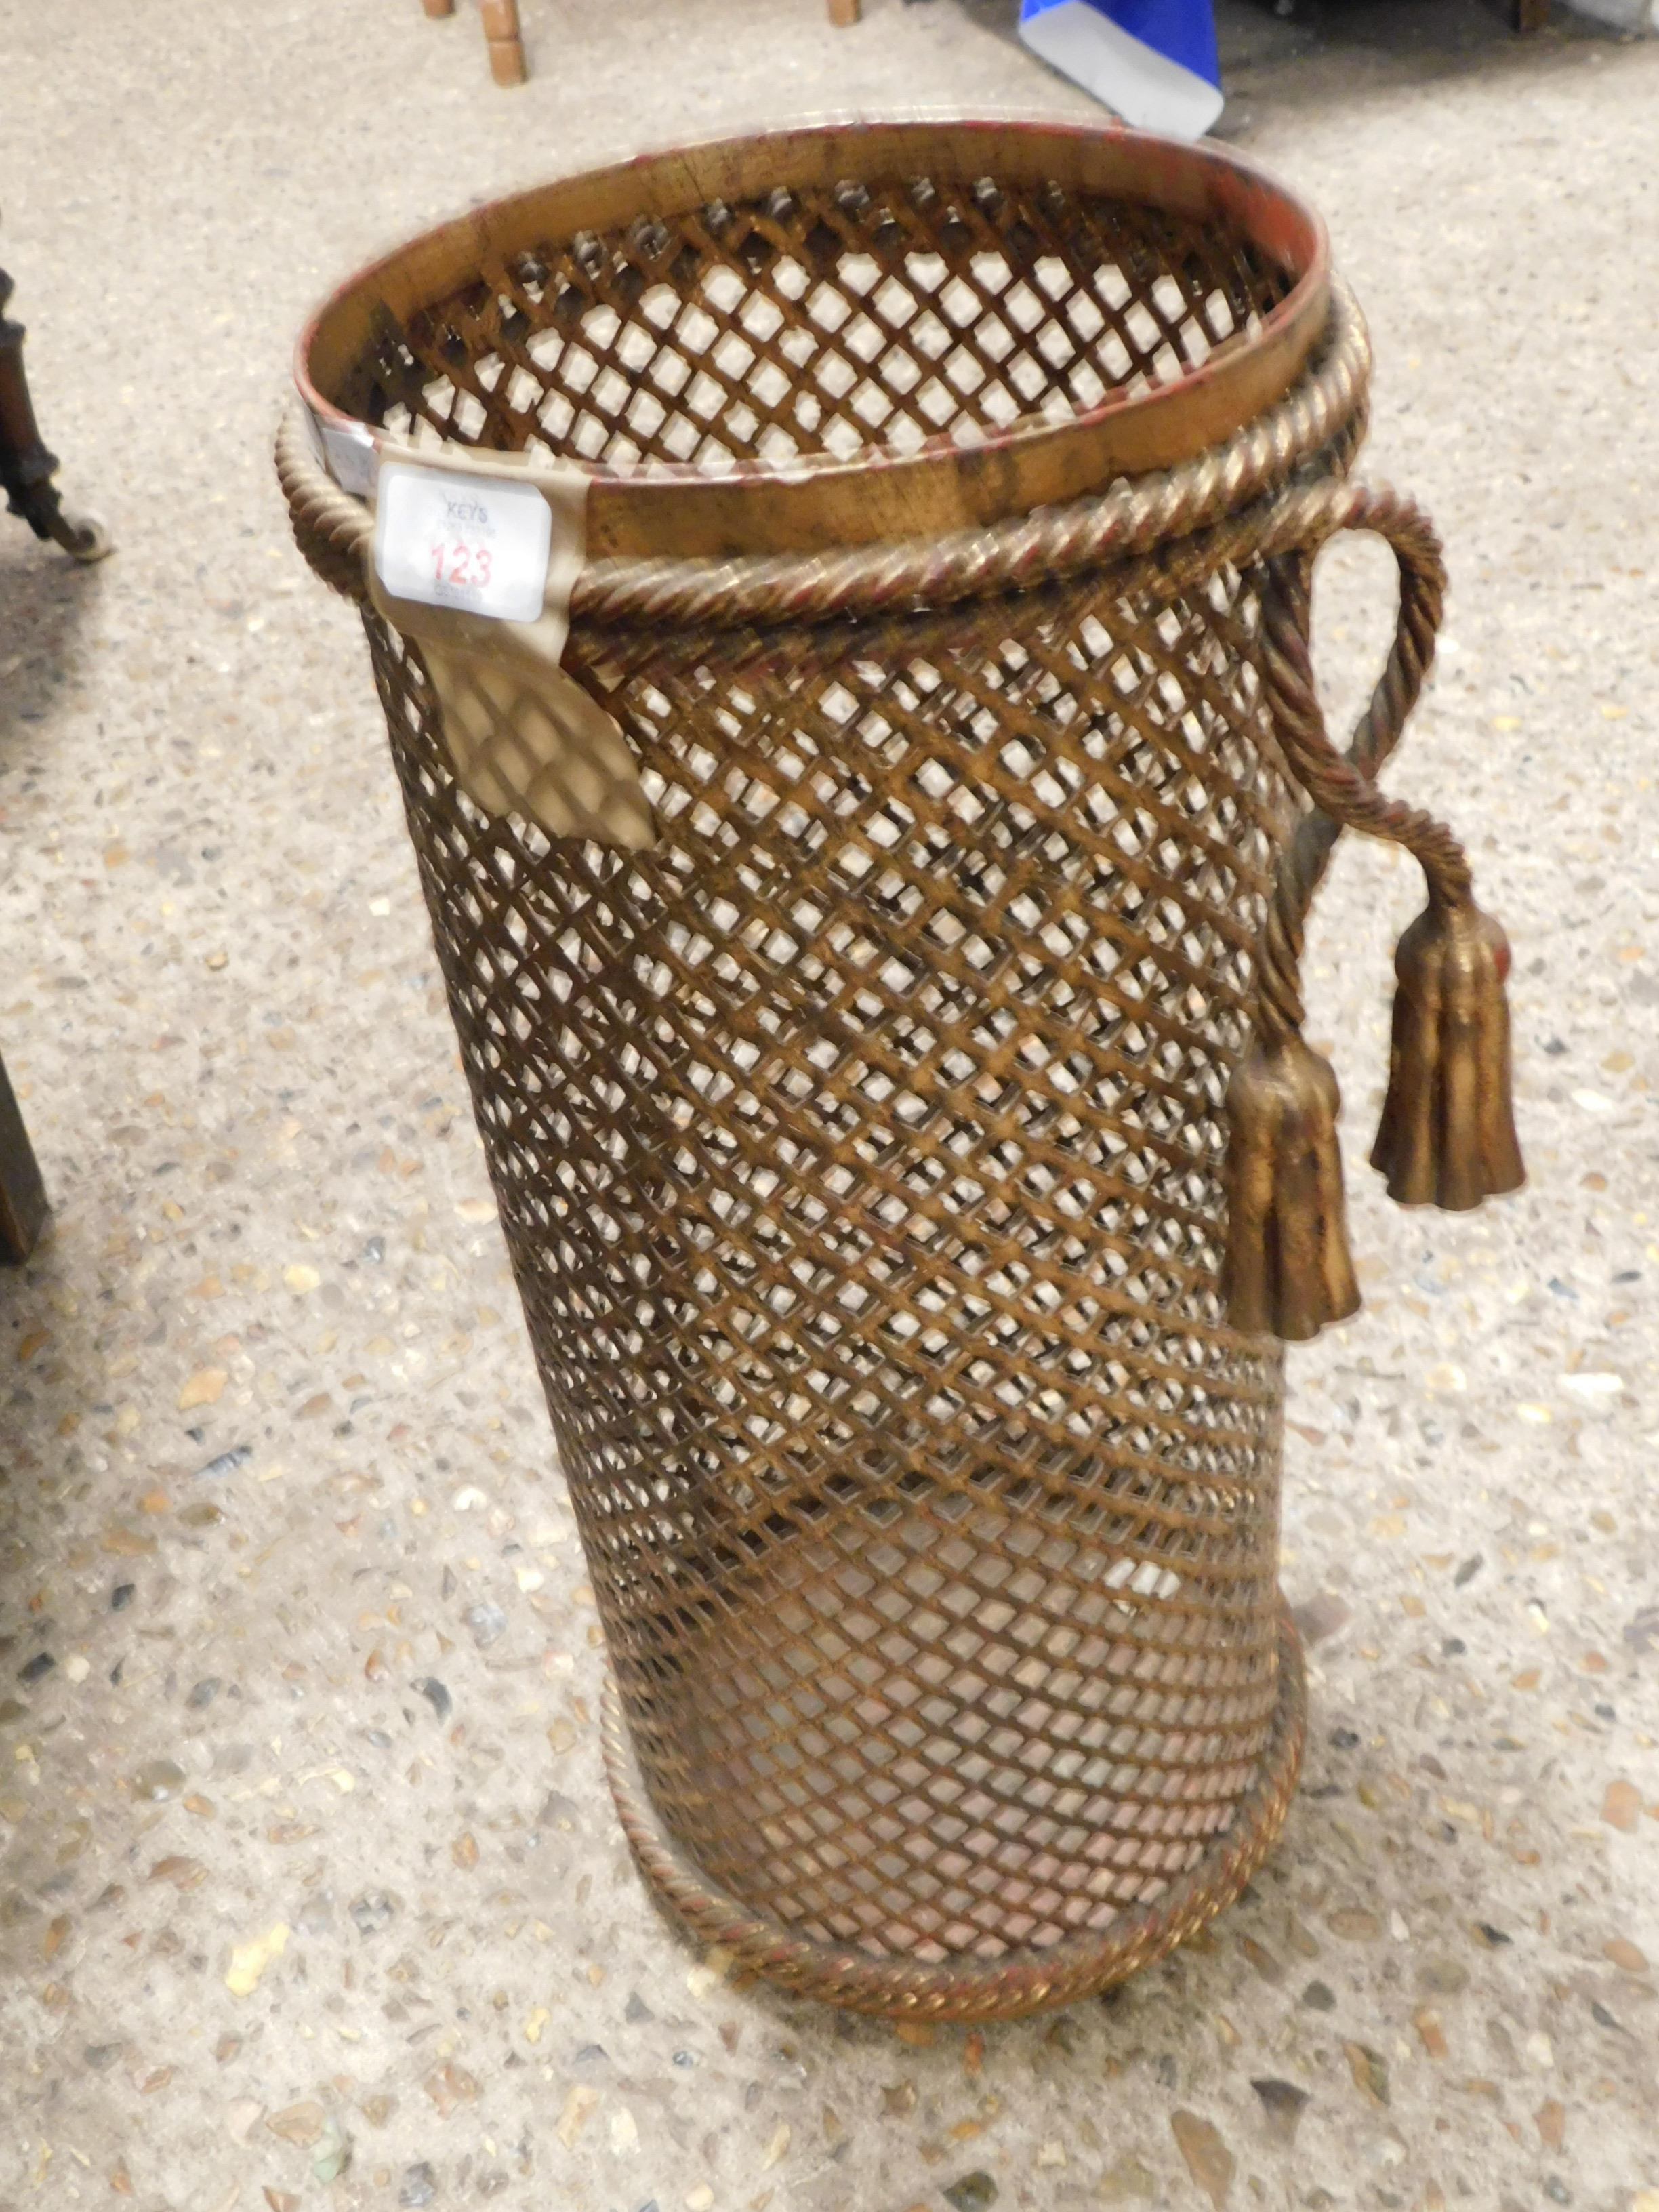 Lot 123 - MODERN GILT METAL CIRCULAR STICK STAND WITH GRILLE DETAIL AND TASSELS